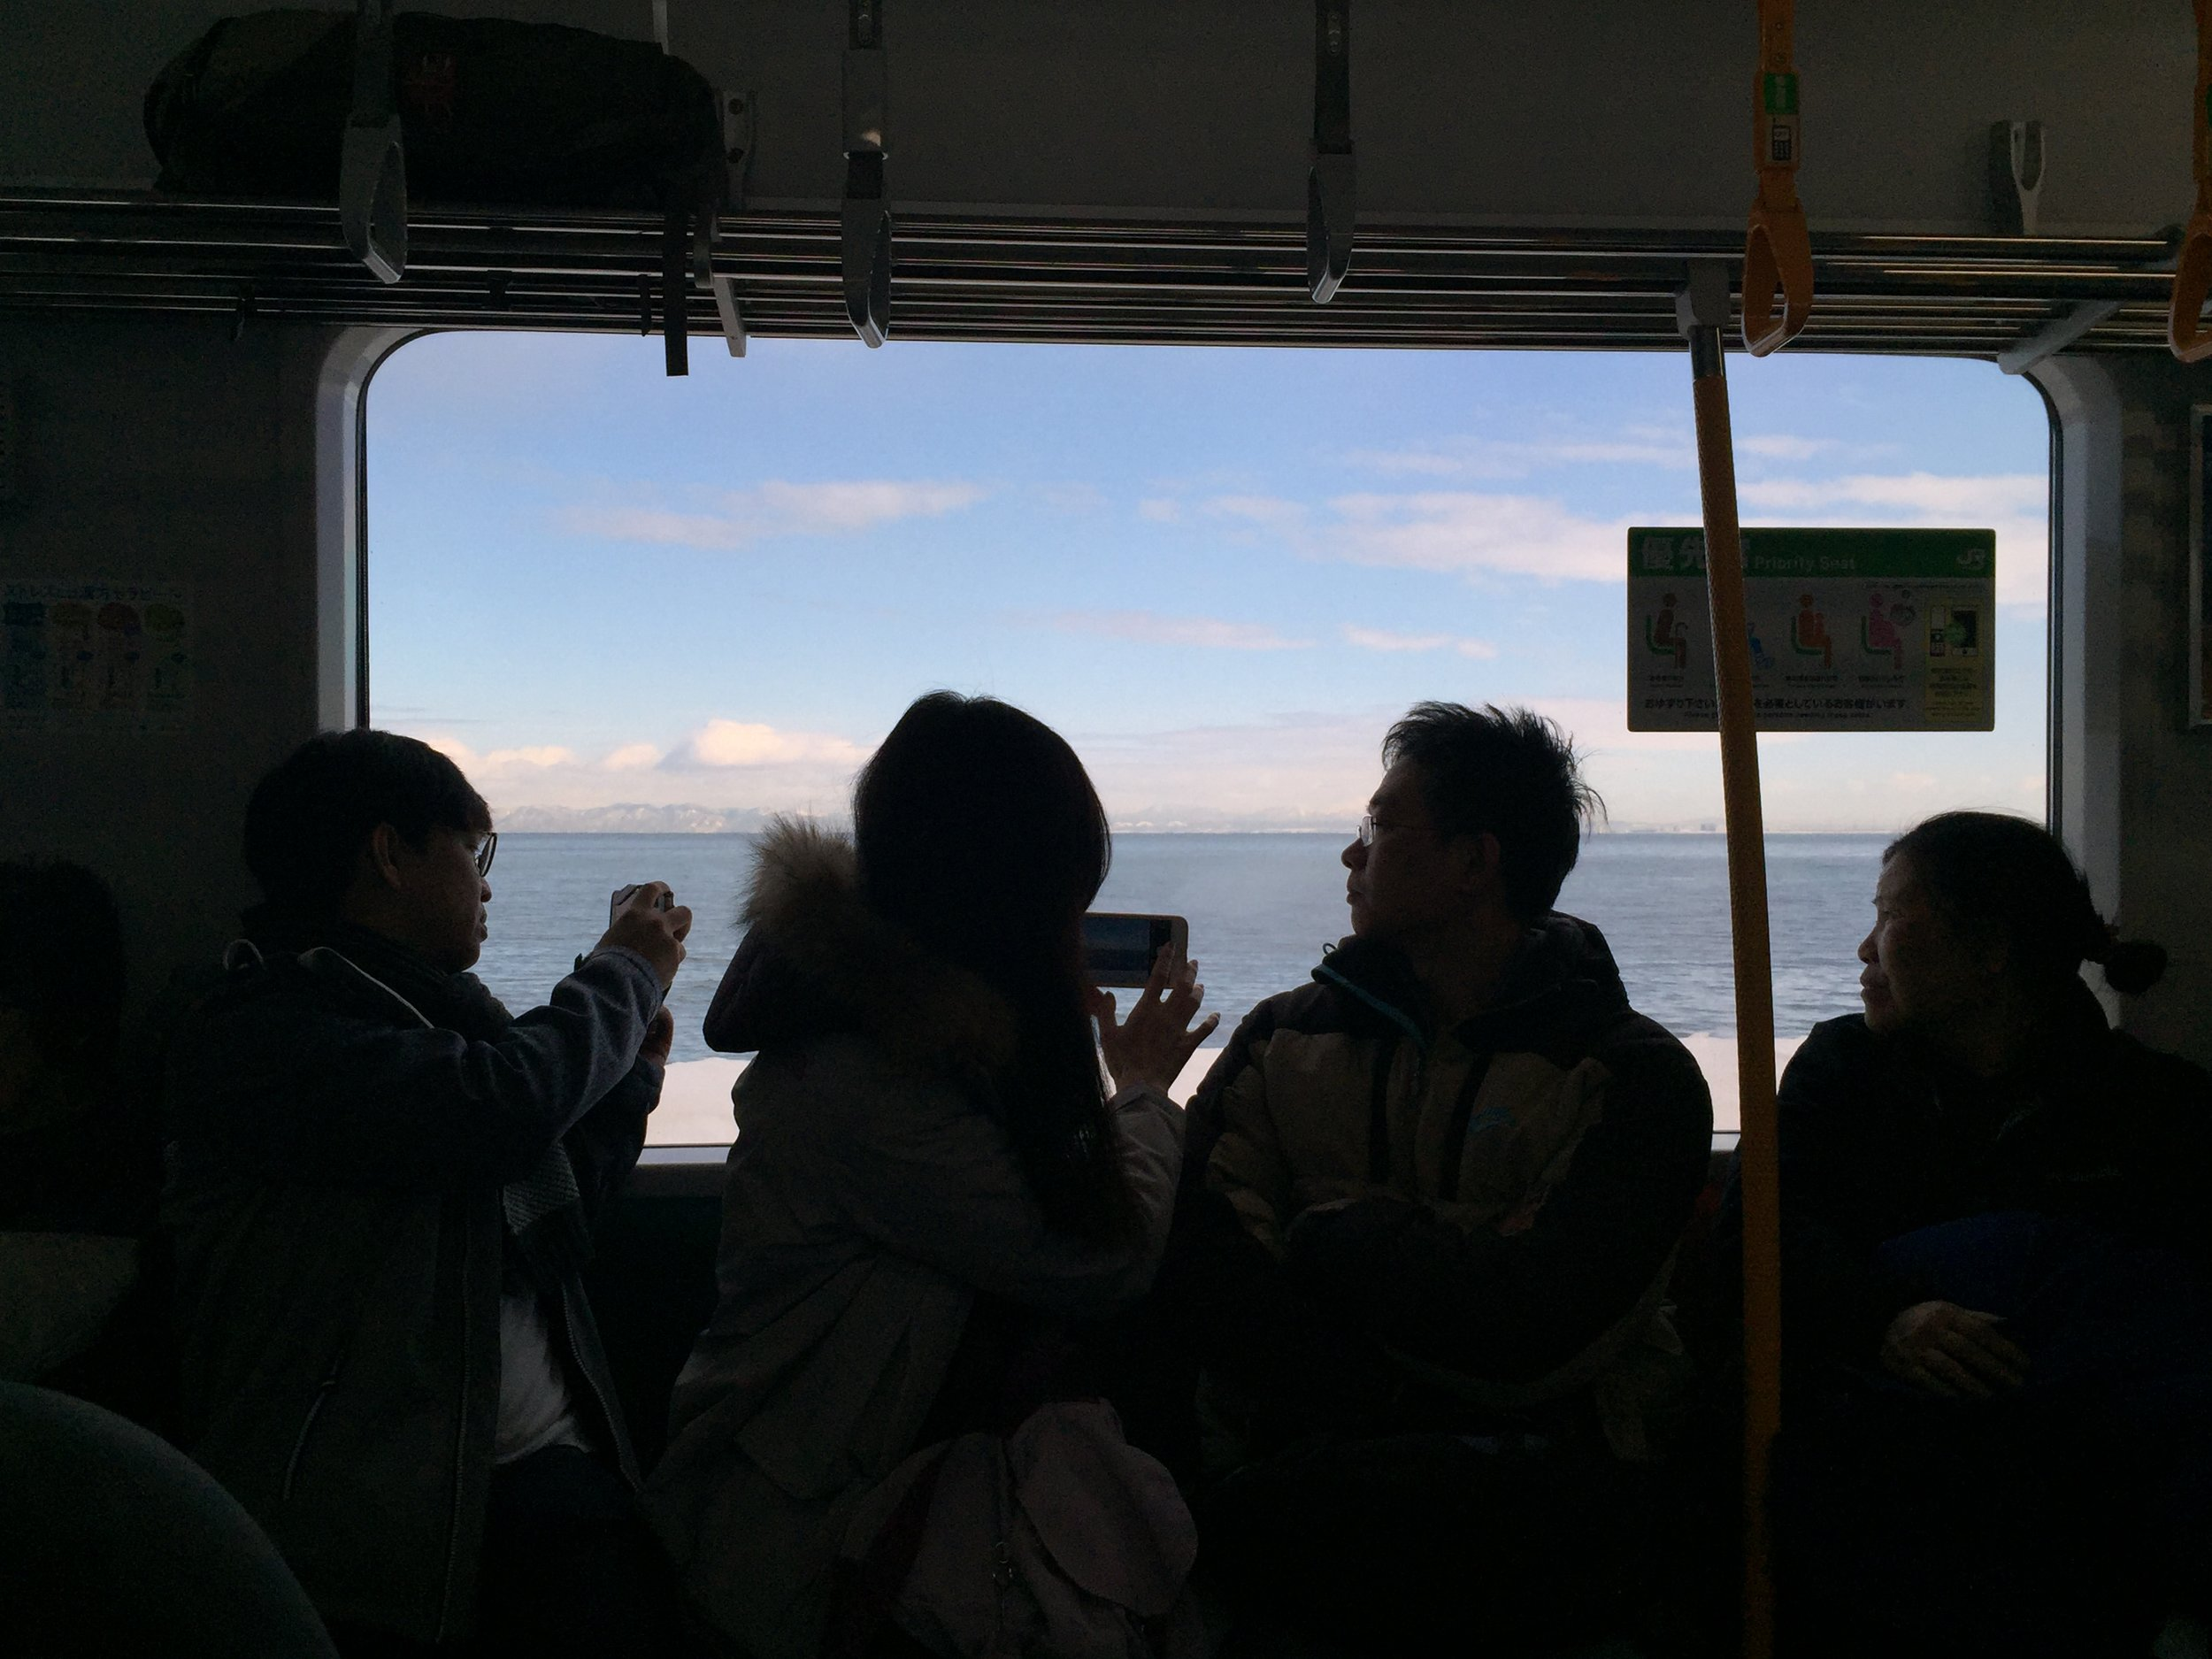 Scenic train from Sapporo to Otaru.